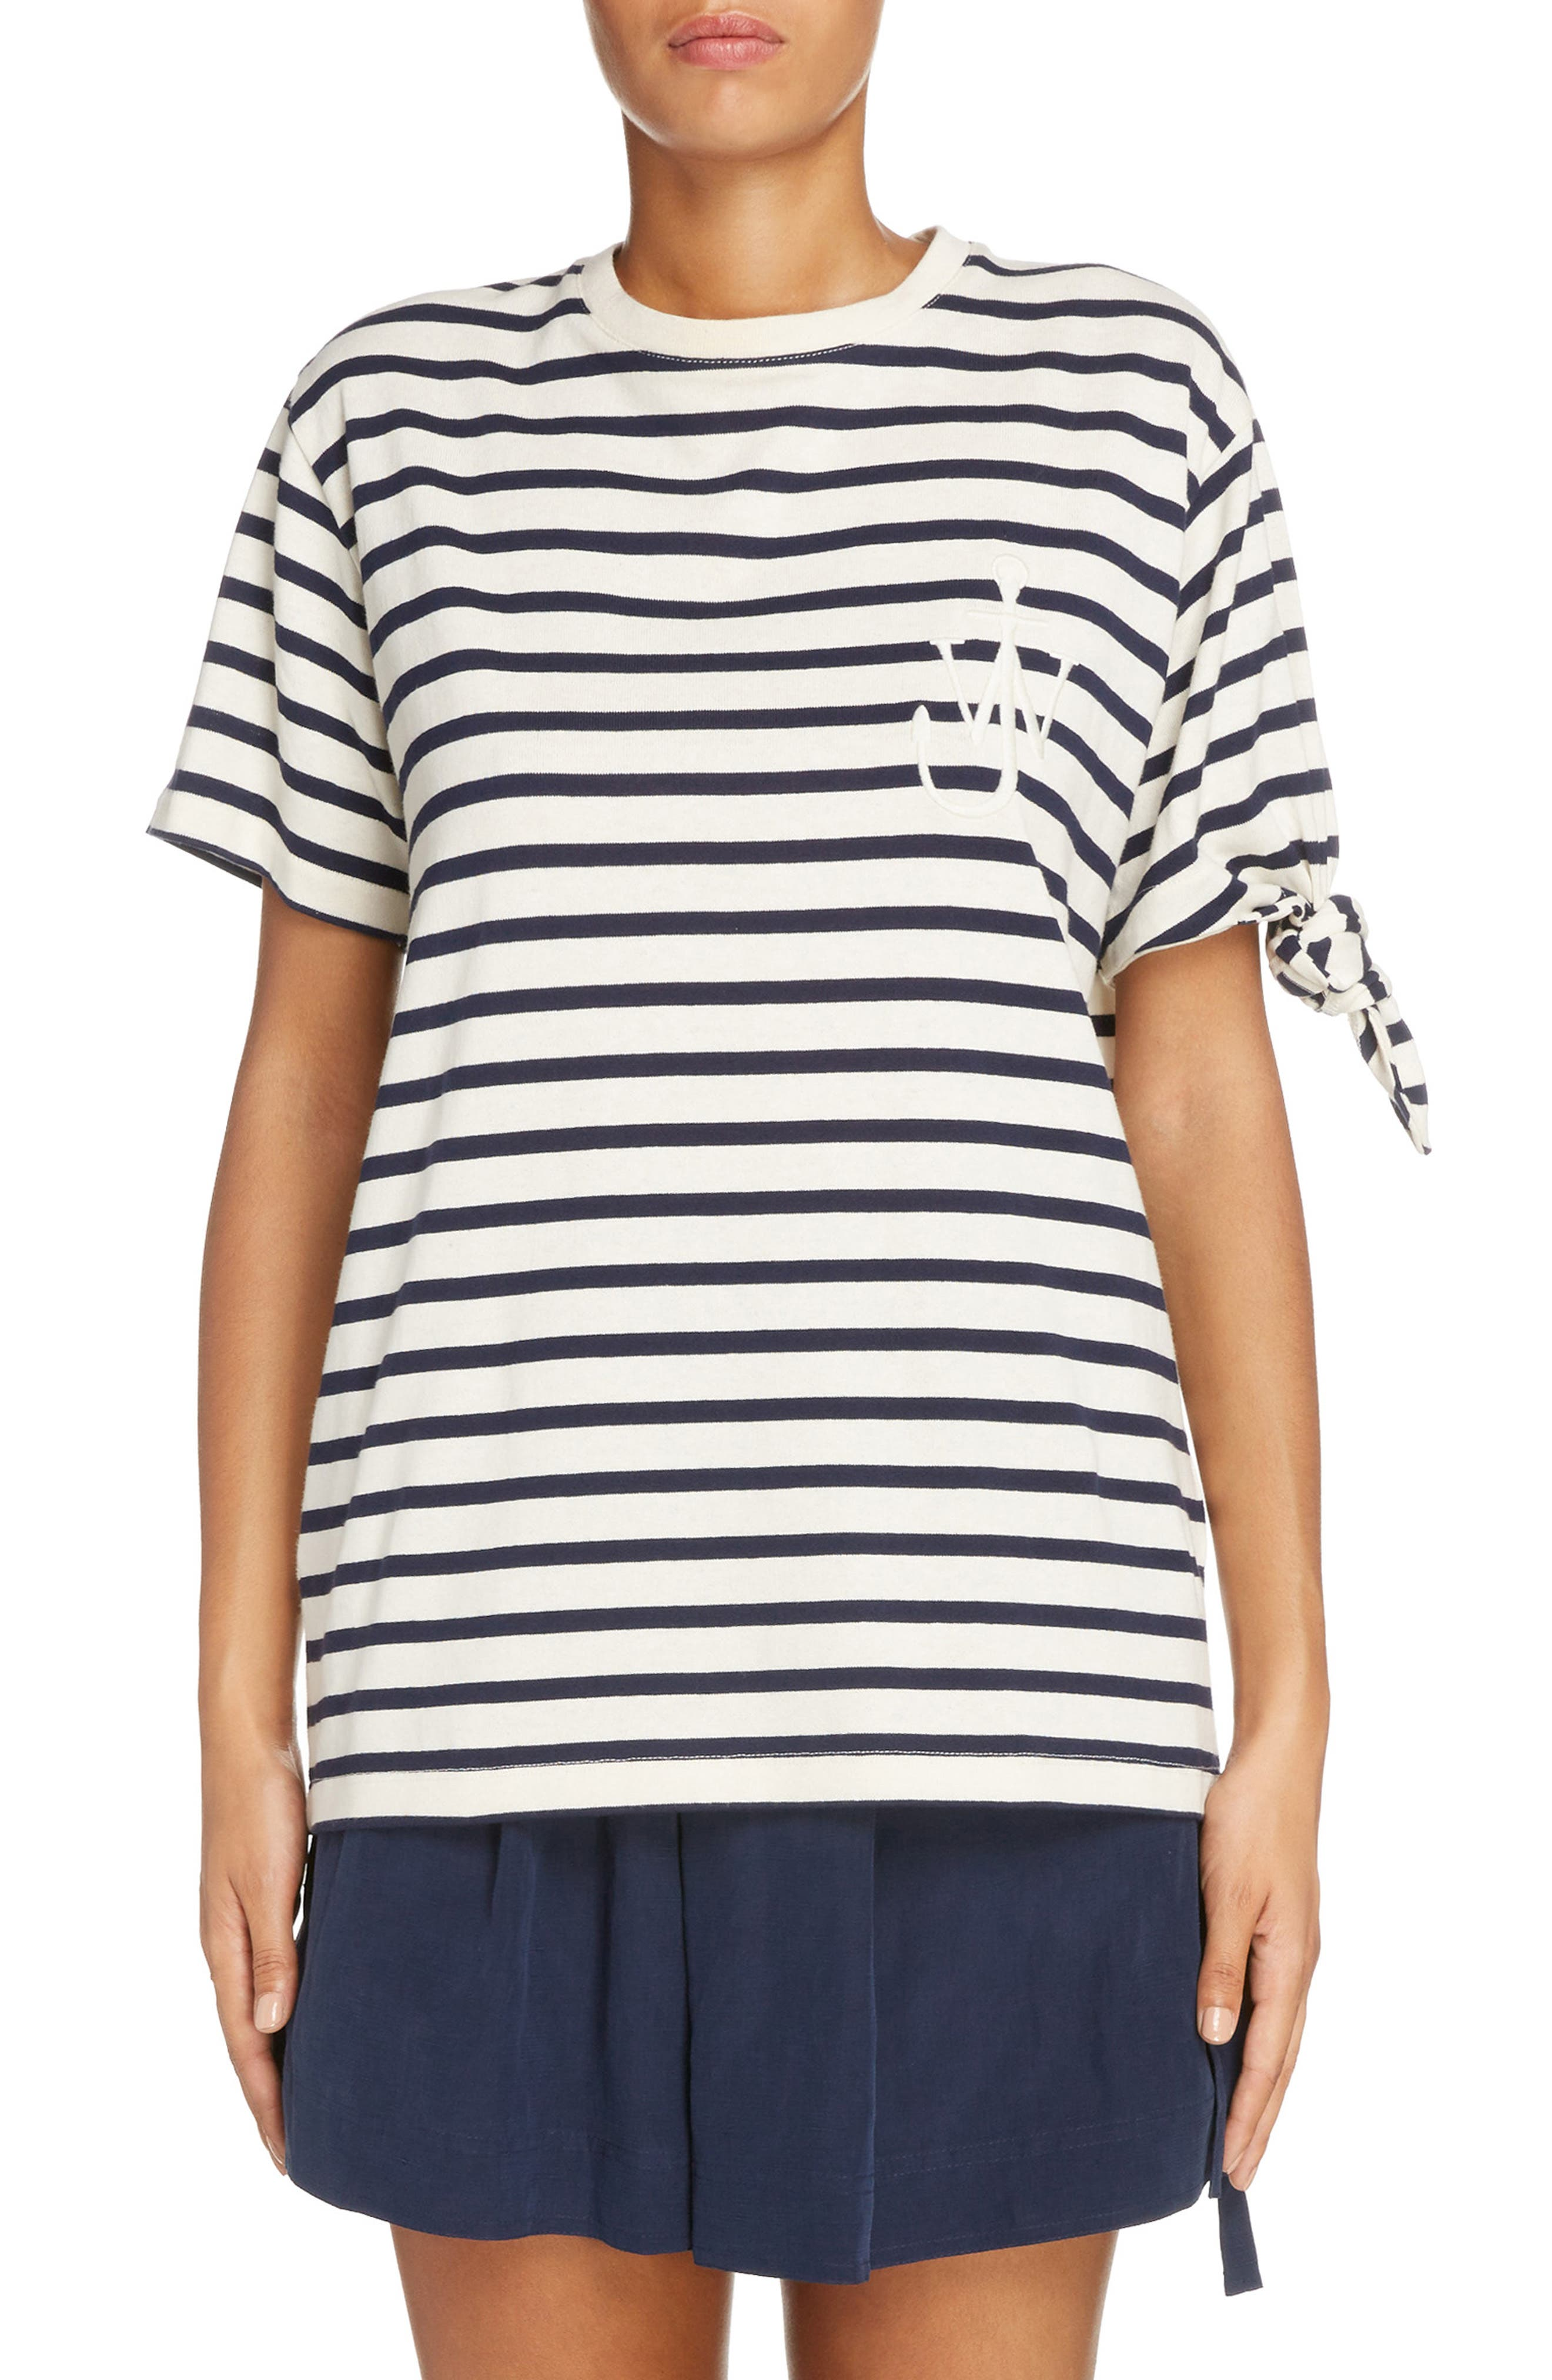 Alternate Image 1 Selected - J.W.ANDERSON Breton Stripe Knot Sleeve Tee